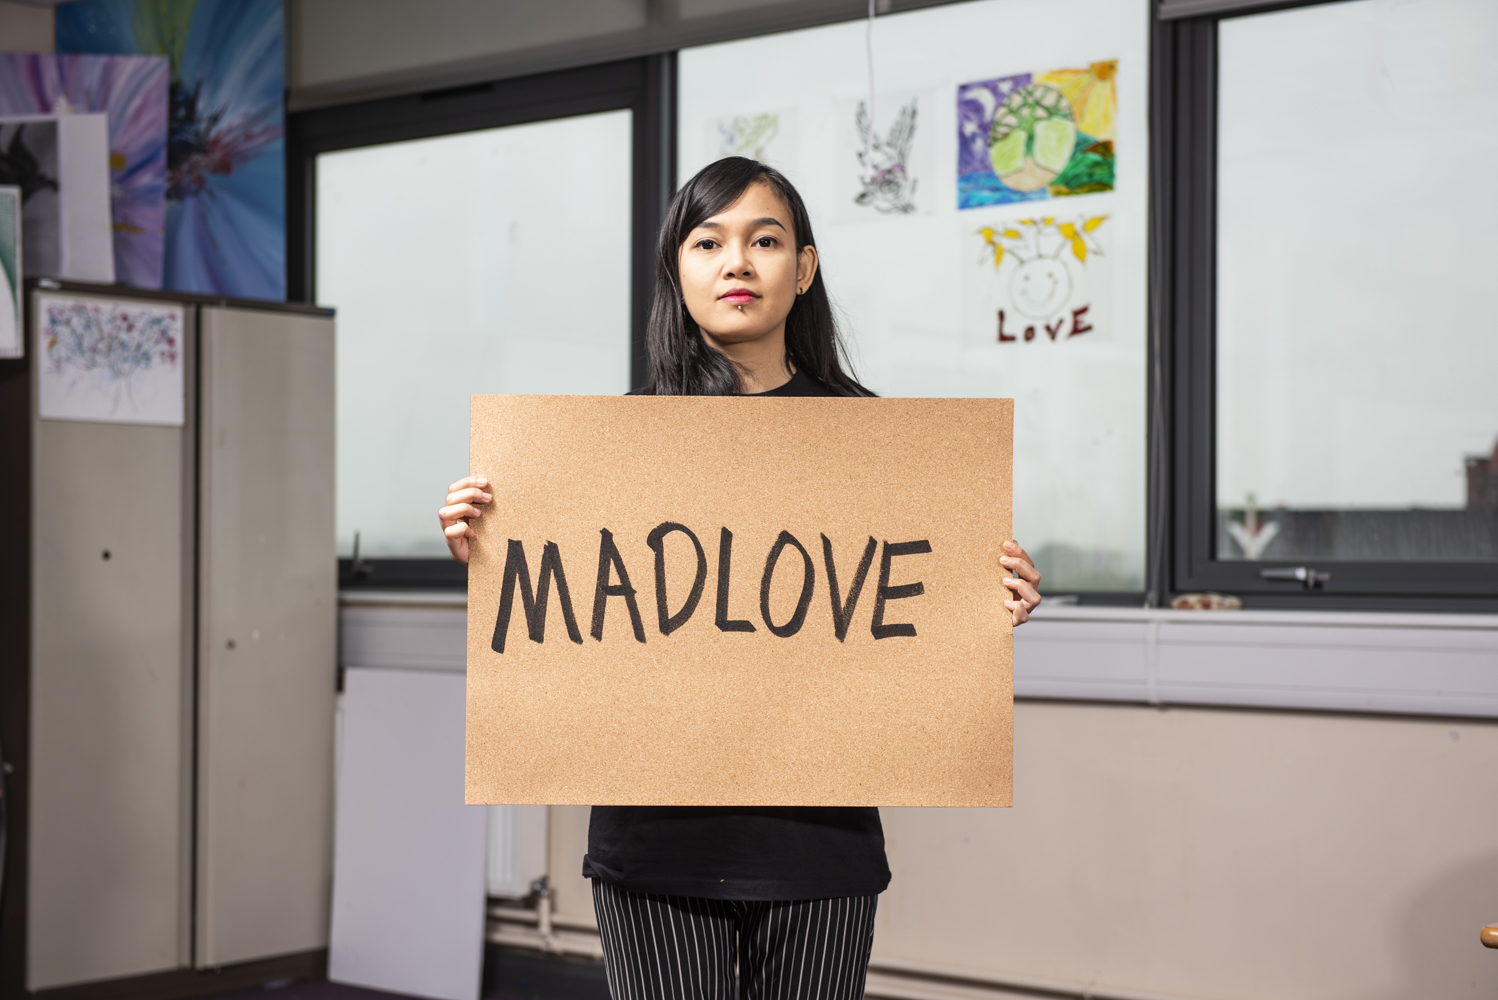 Madlove poster held by Hana Madness